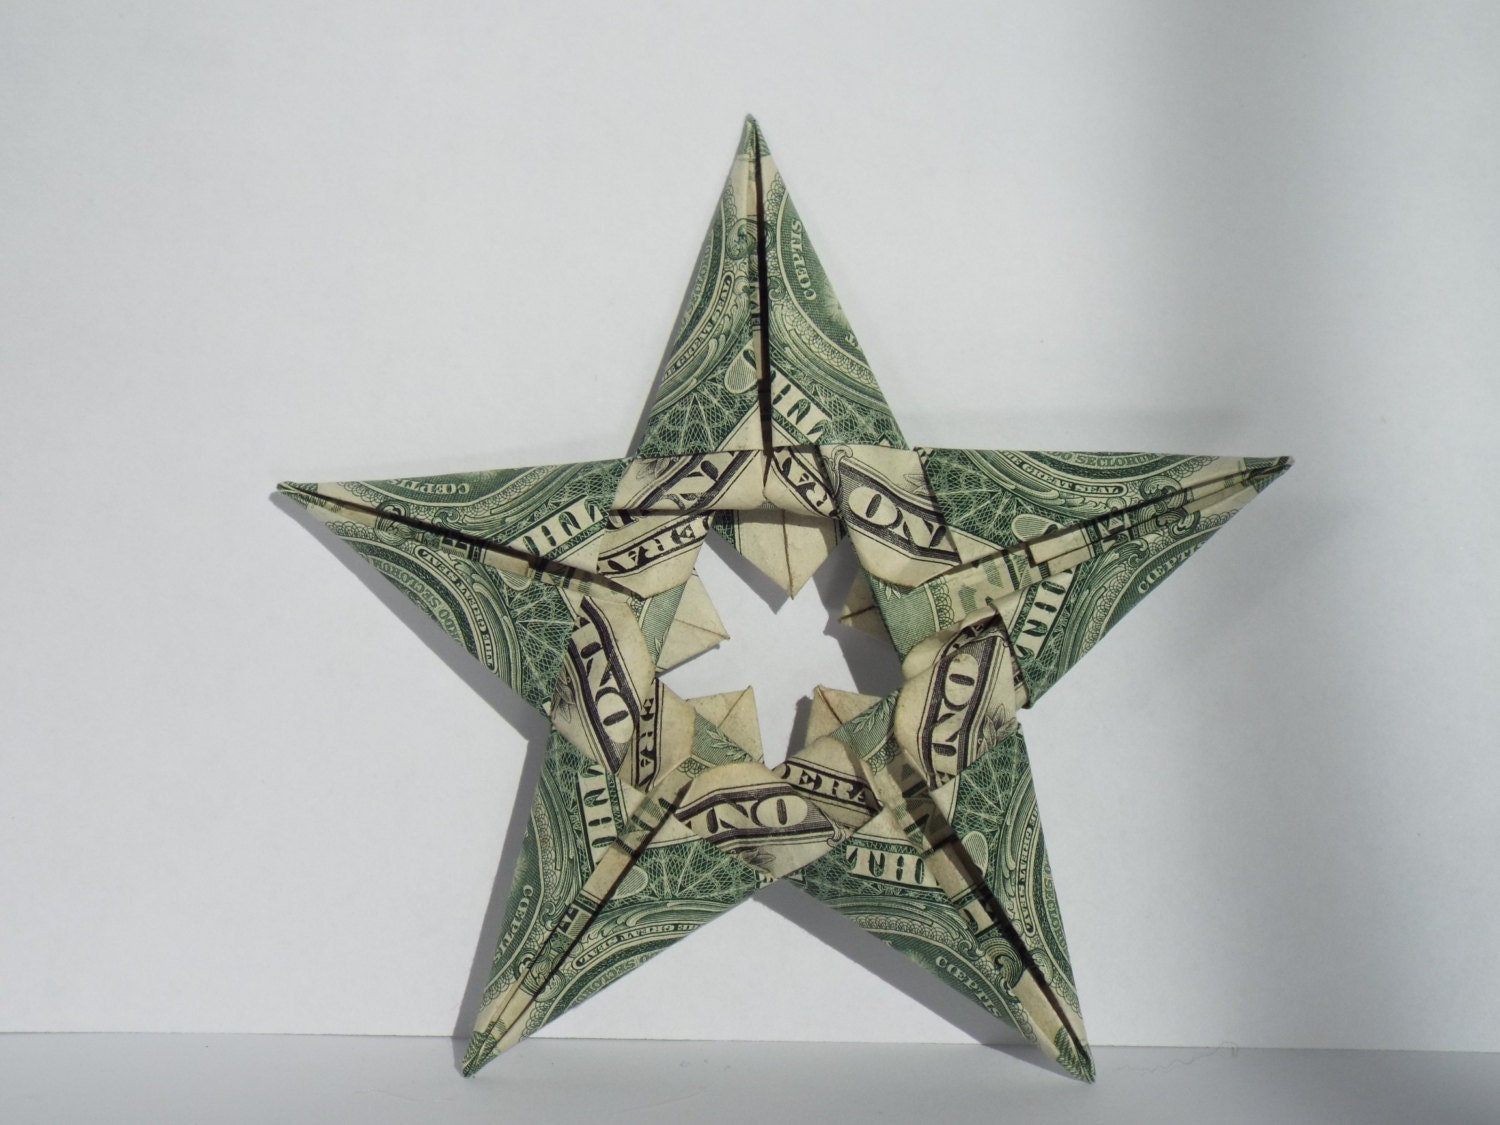 Dollar Bill Origami Five Pointed Star - photo#46